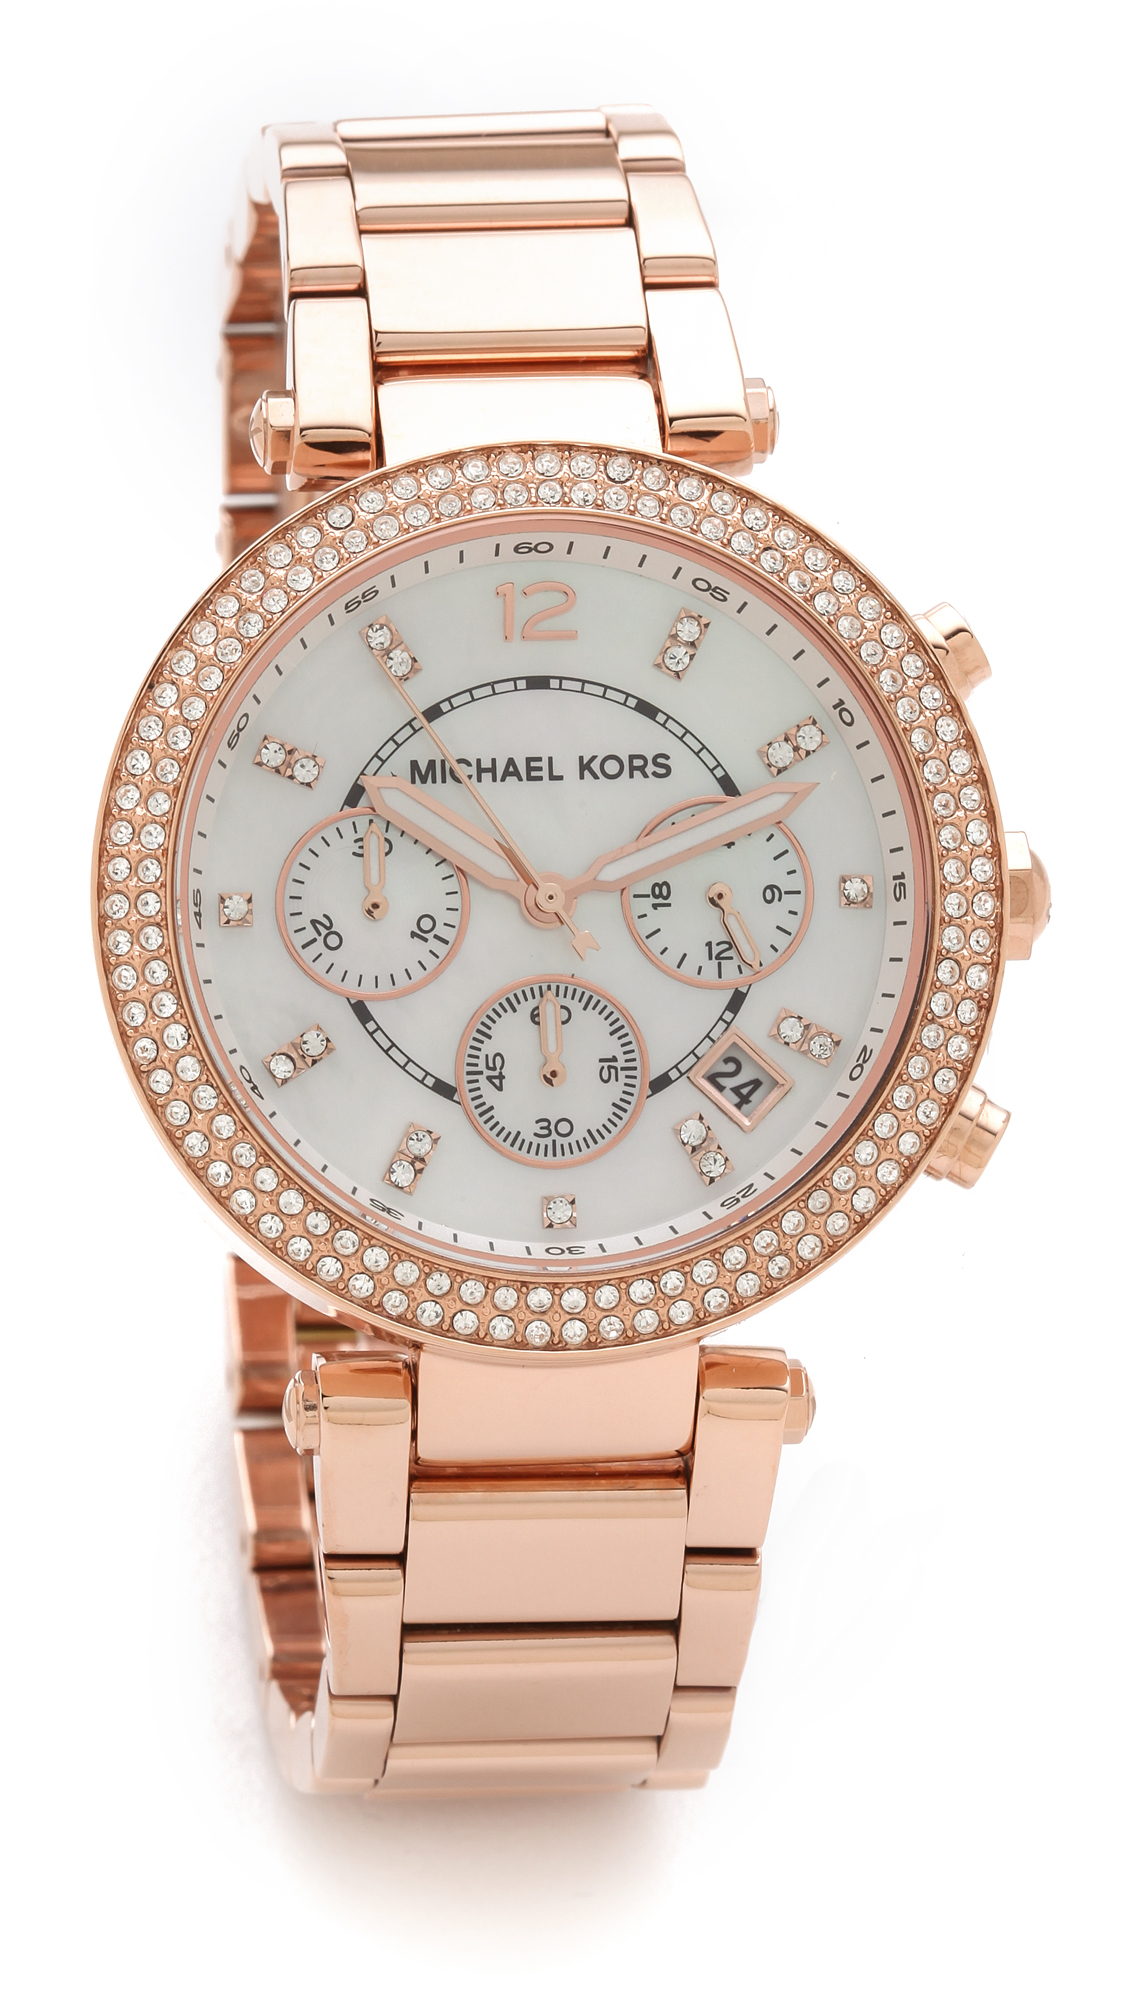 Michael kors parker watch rose gold in gold rose gold lyst for Watches michael kors